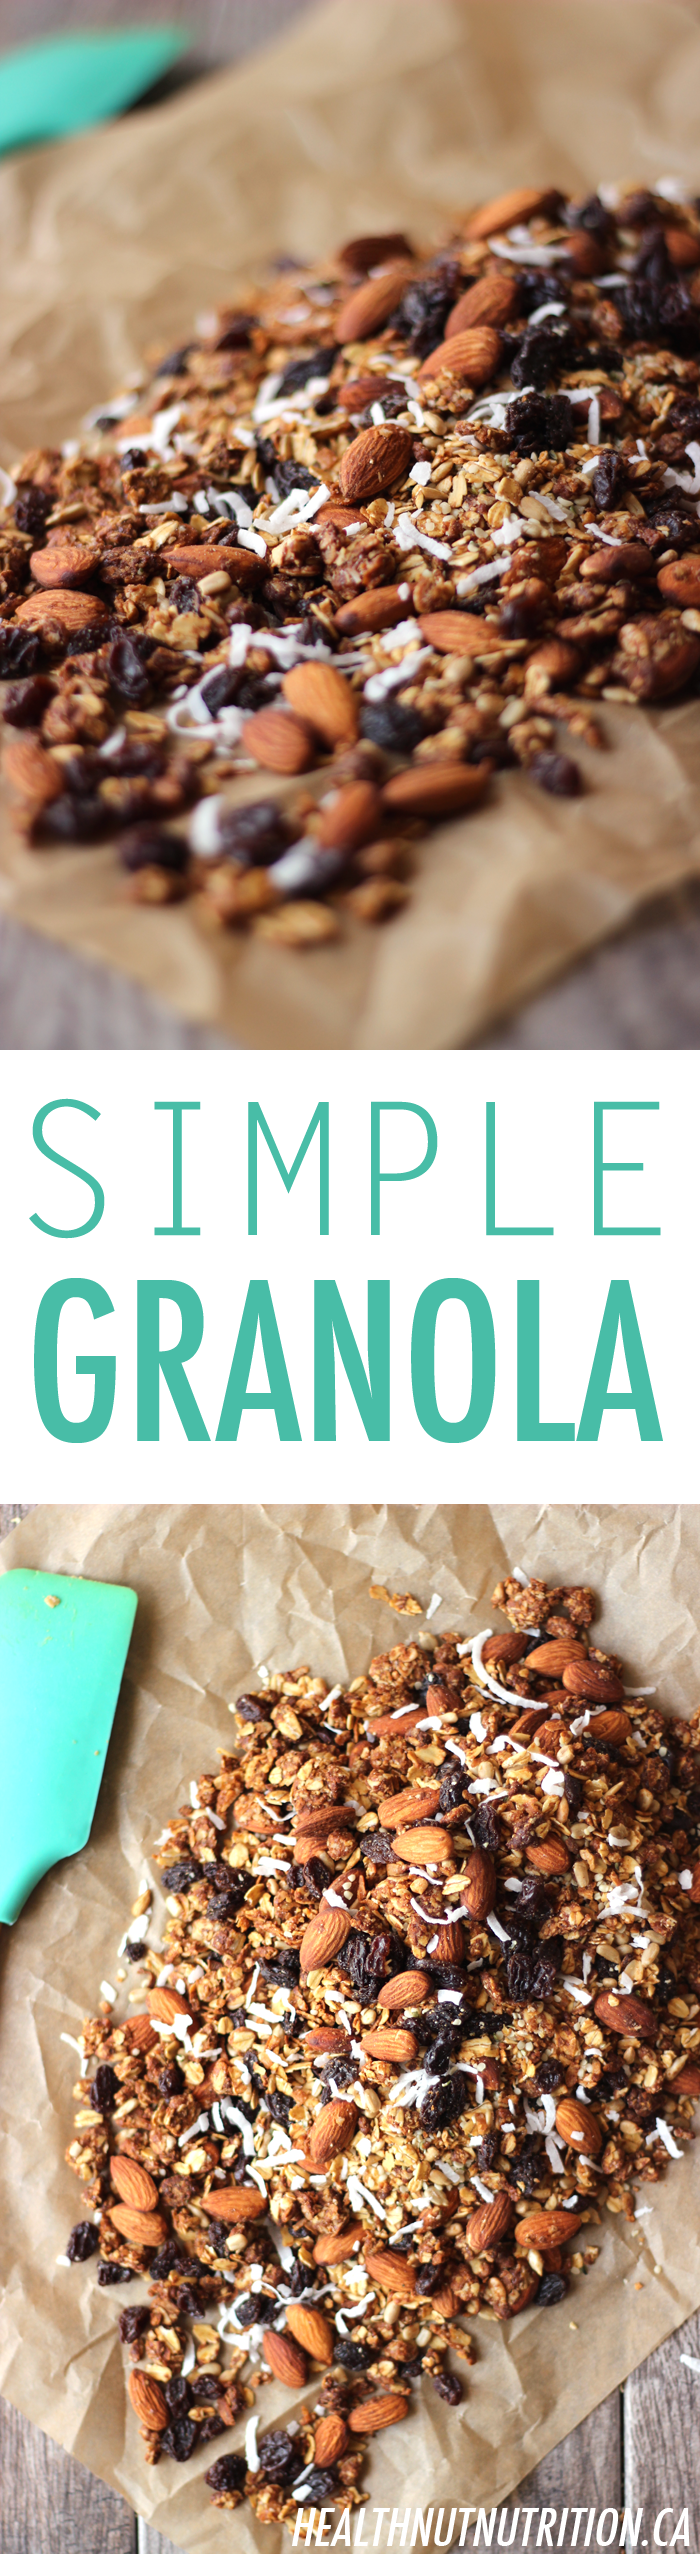 Easy Simple Granola recipe thats refined sugar free!